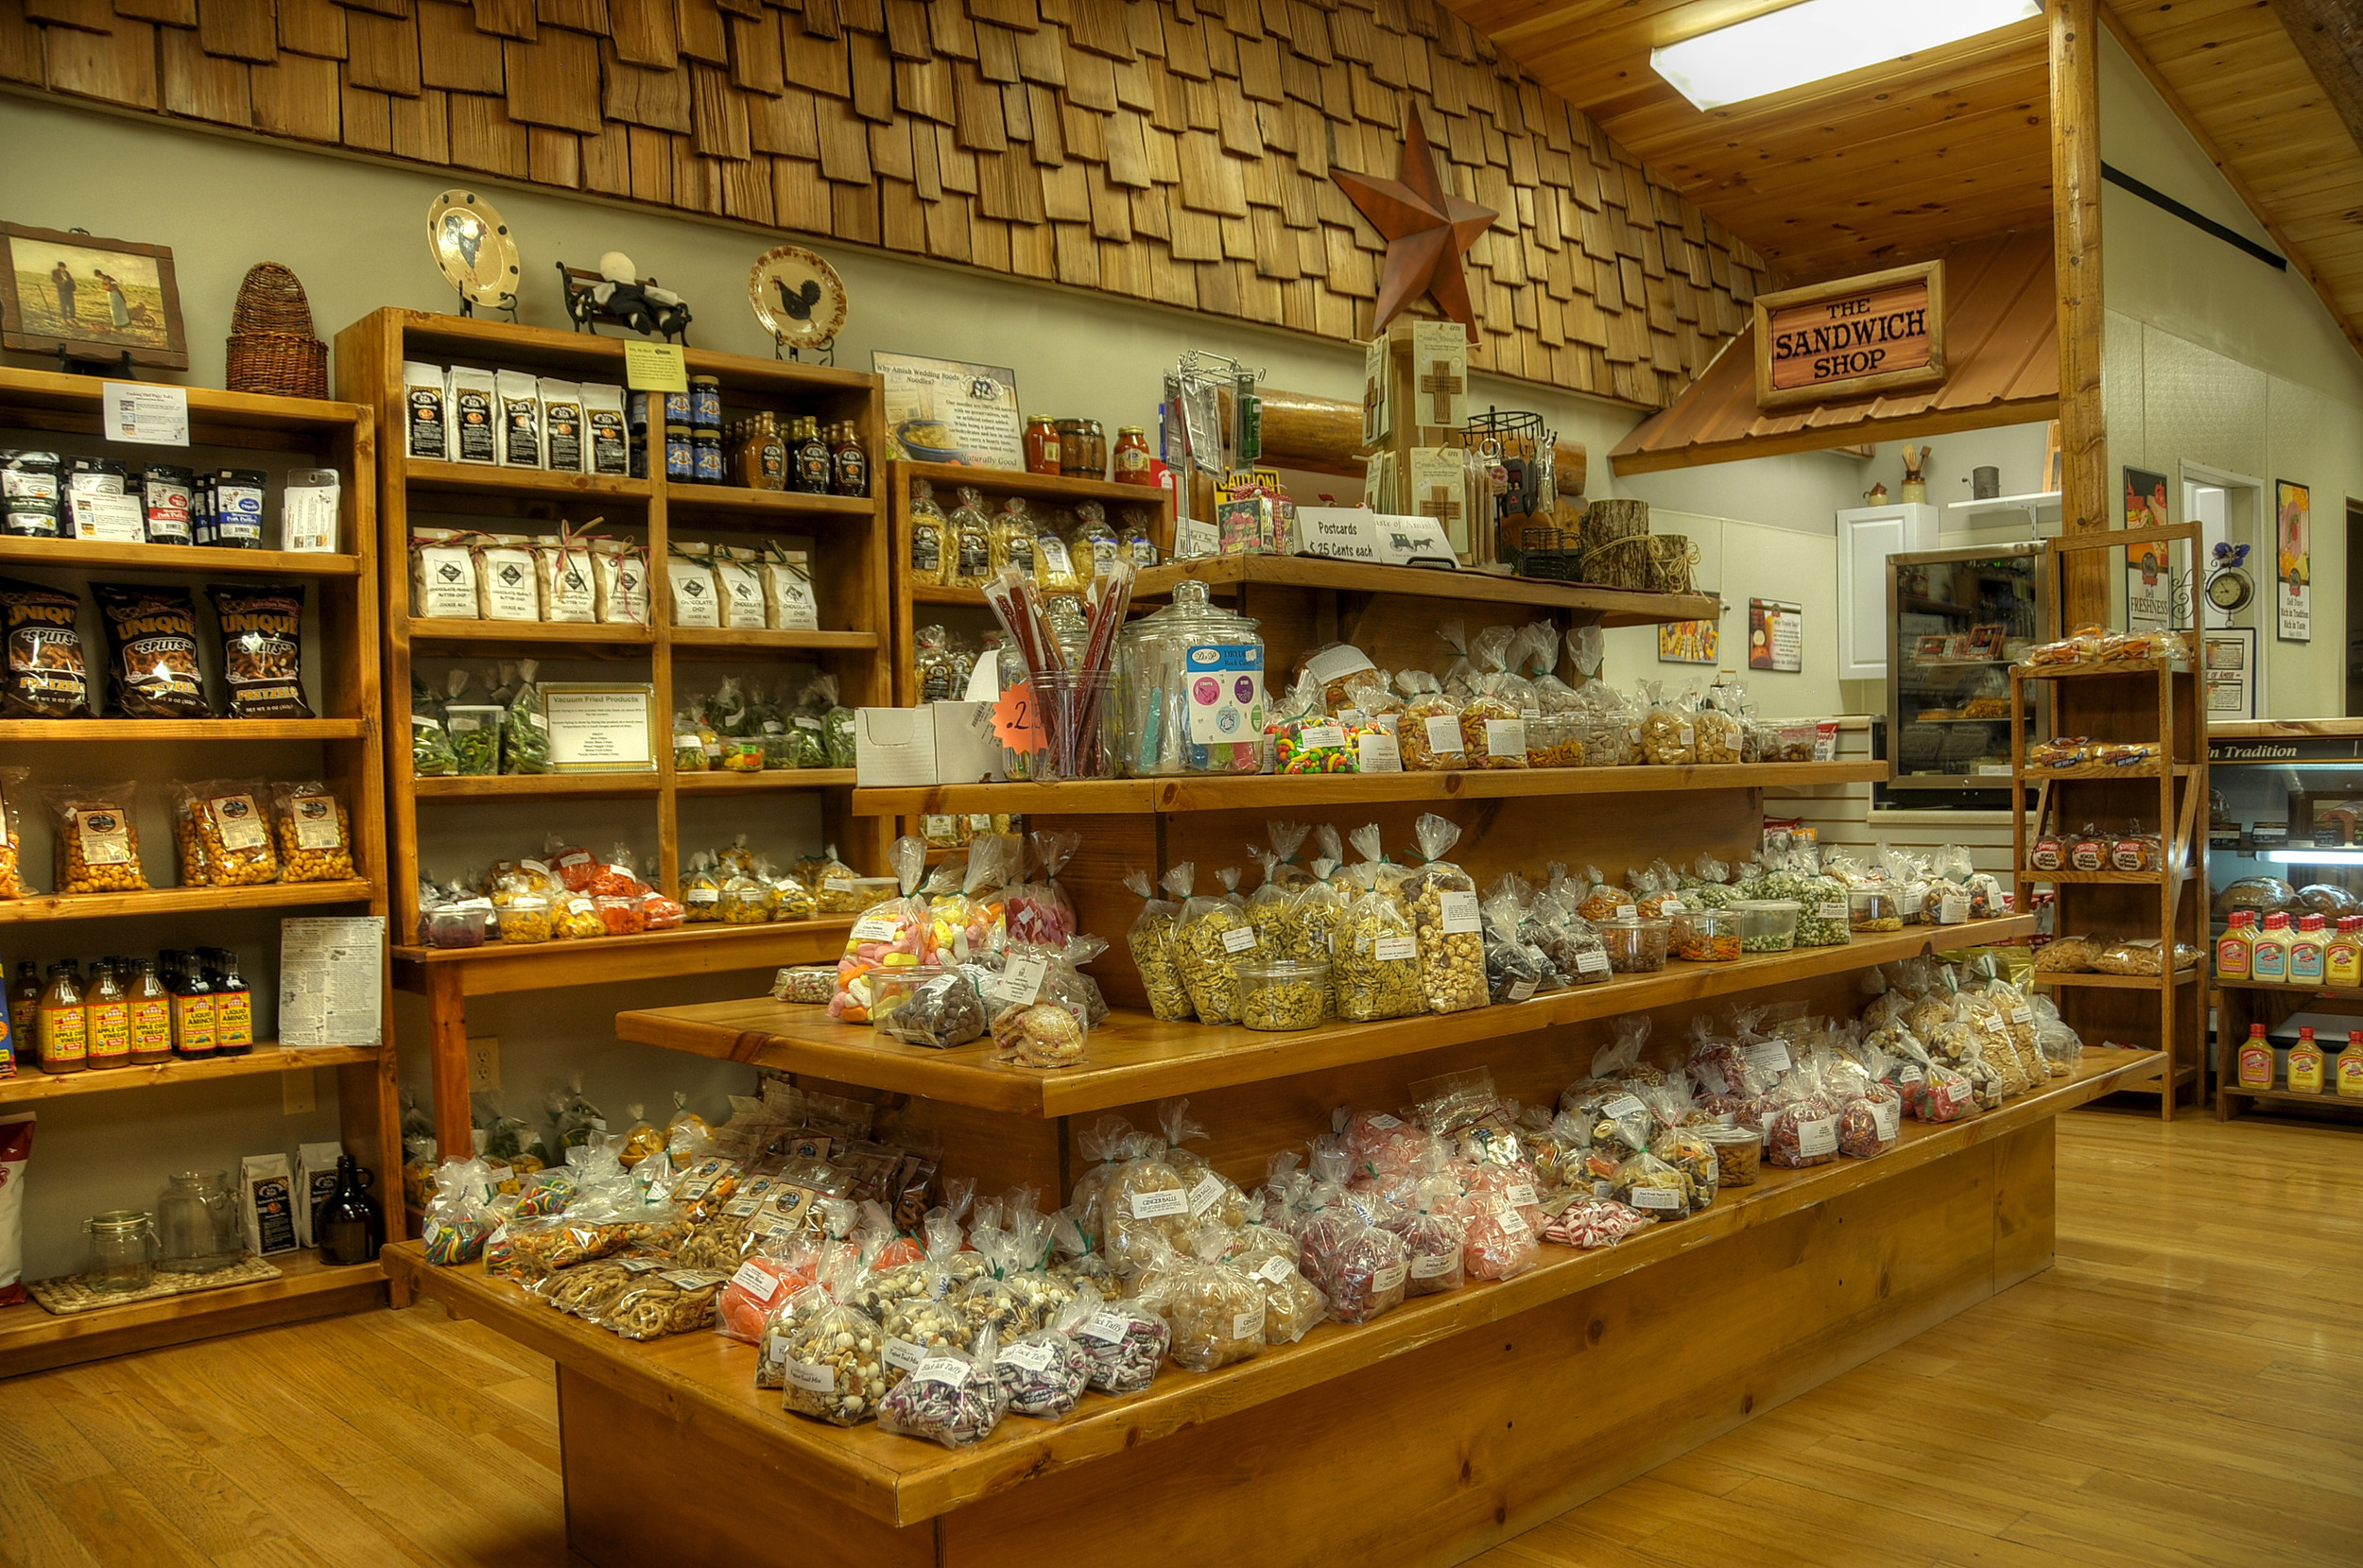 Click below to view a great store, with many wonderful products. Taste of Amish is located in Blue Ridge, GA